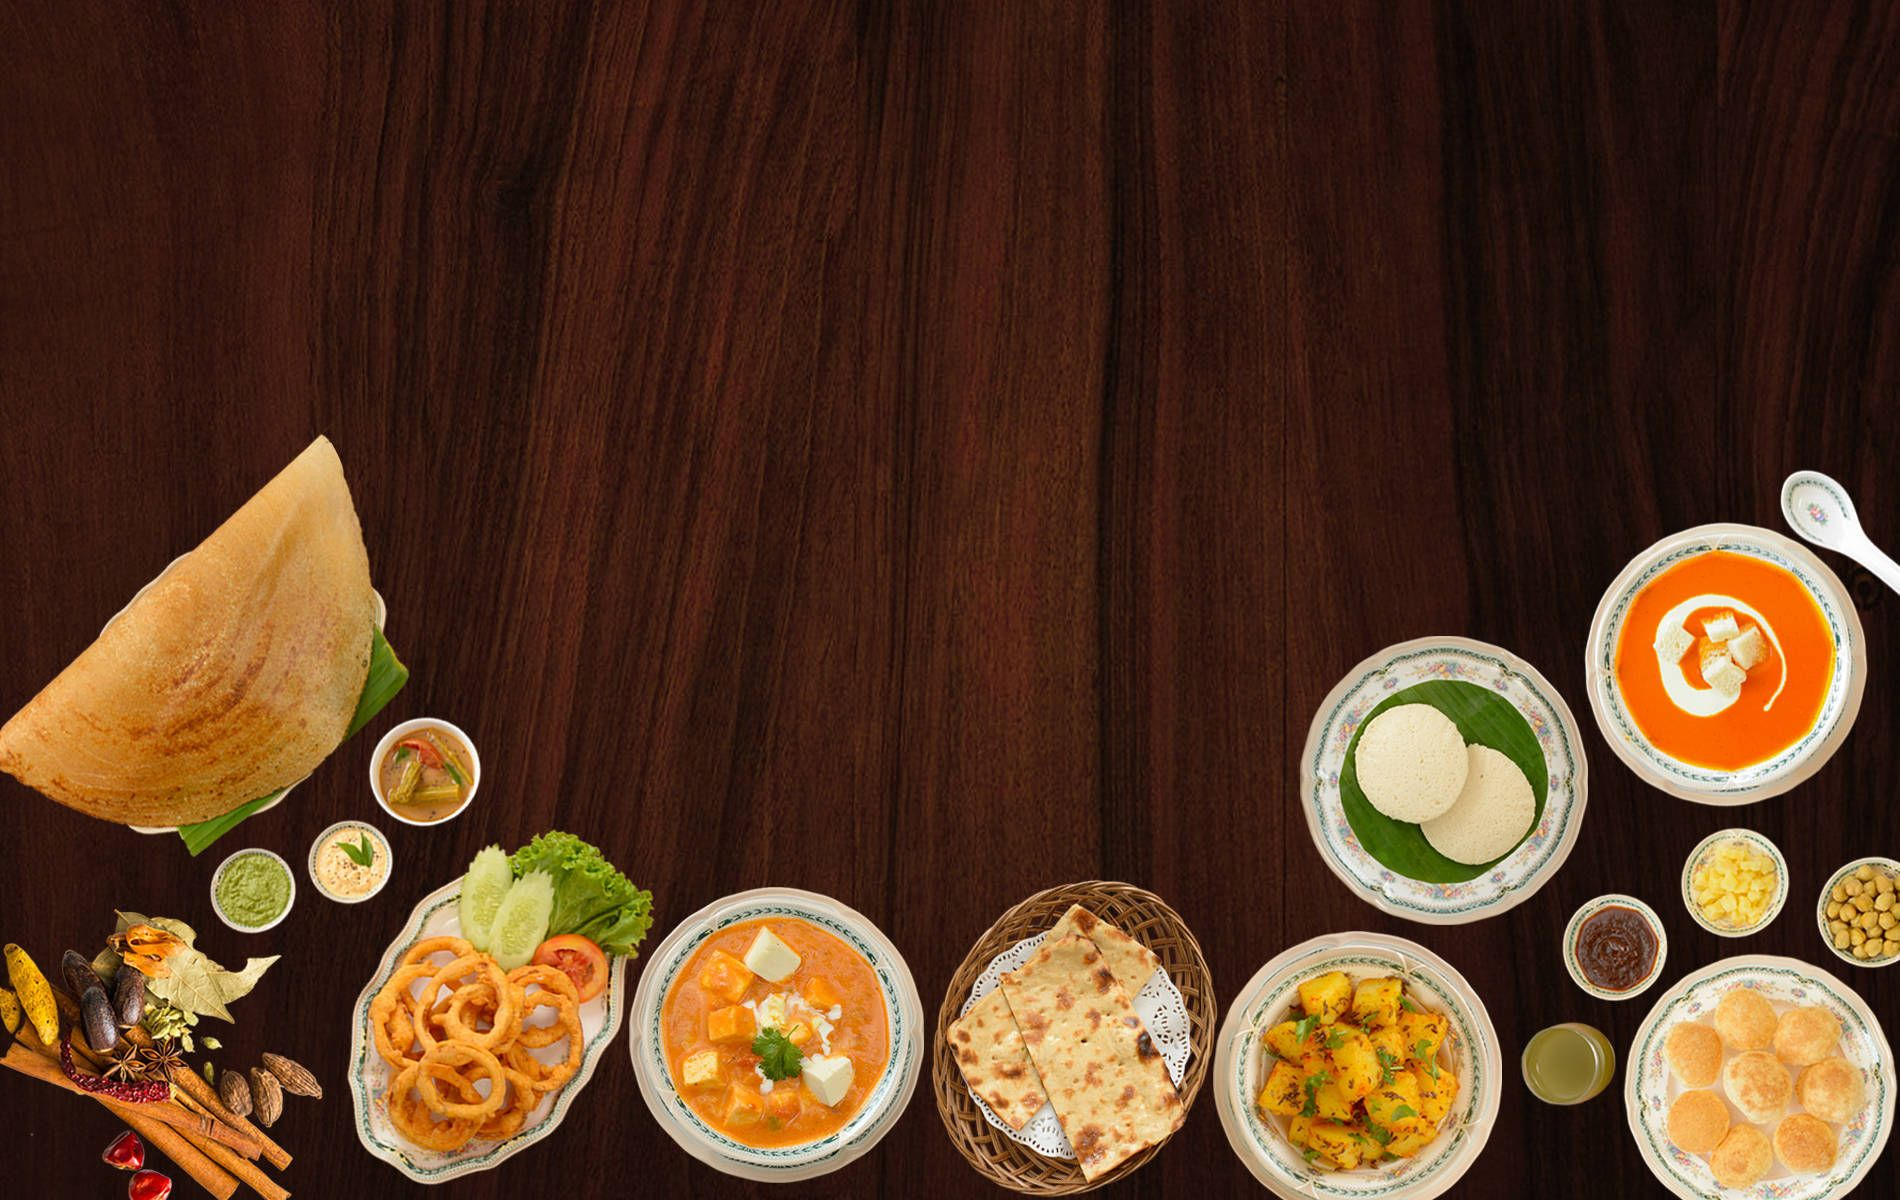 A group of restaurant owners are of the view that their work gets food forumfinder Images